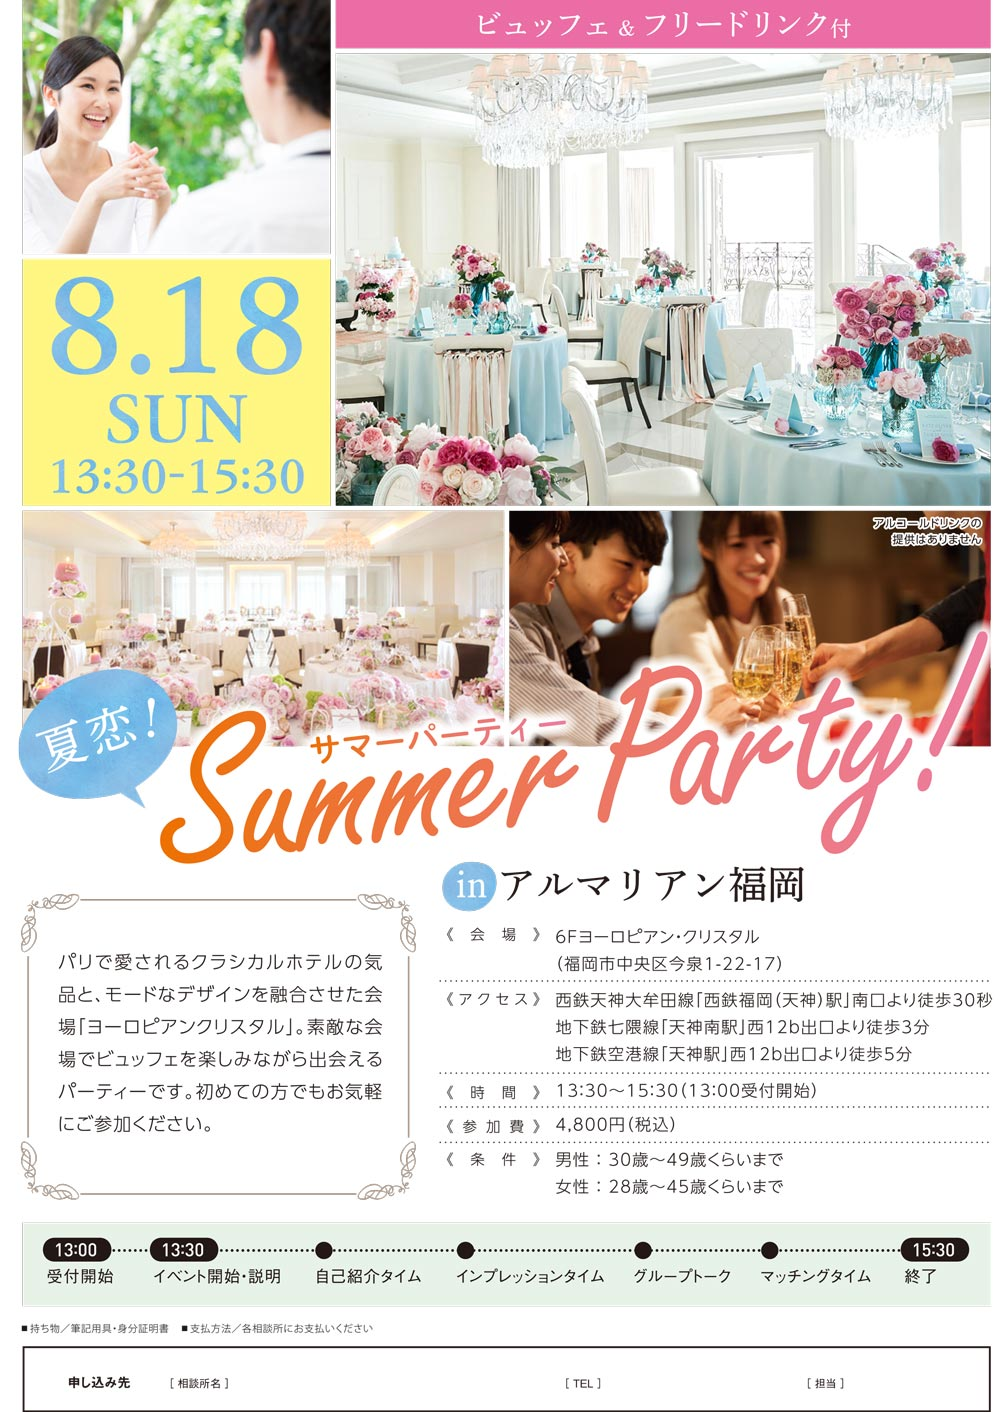 0818summerparty